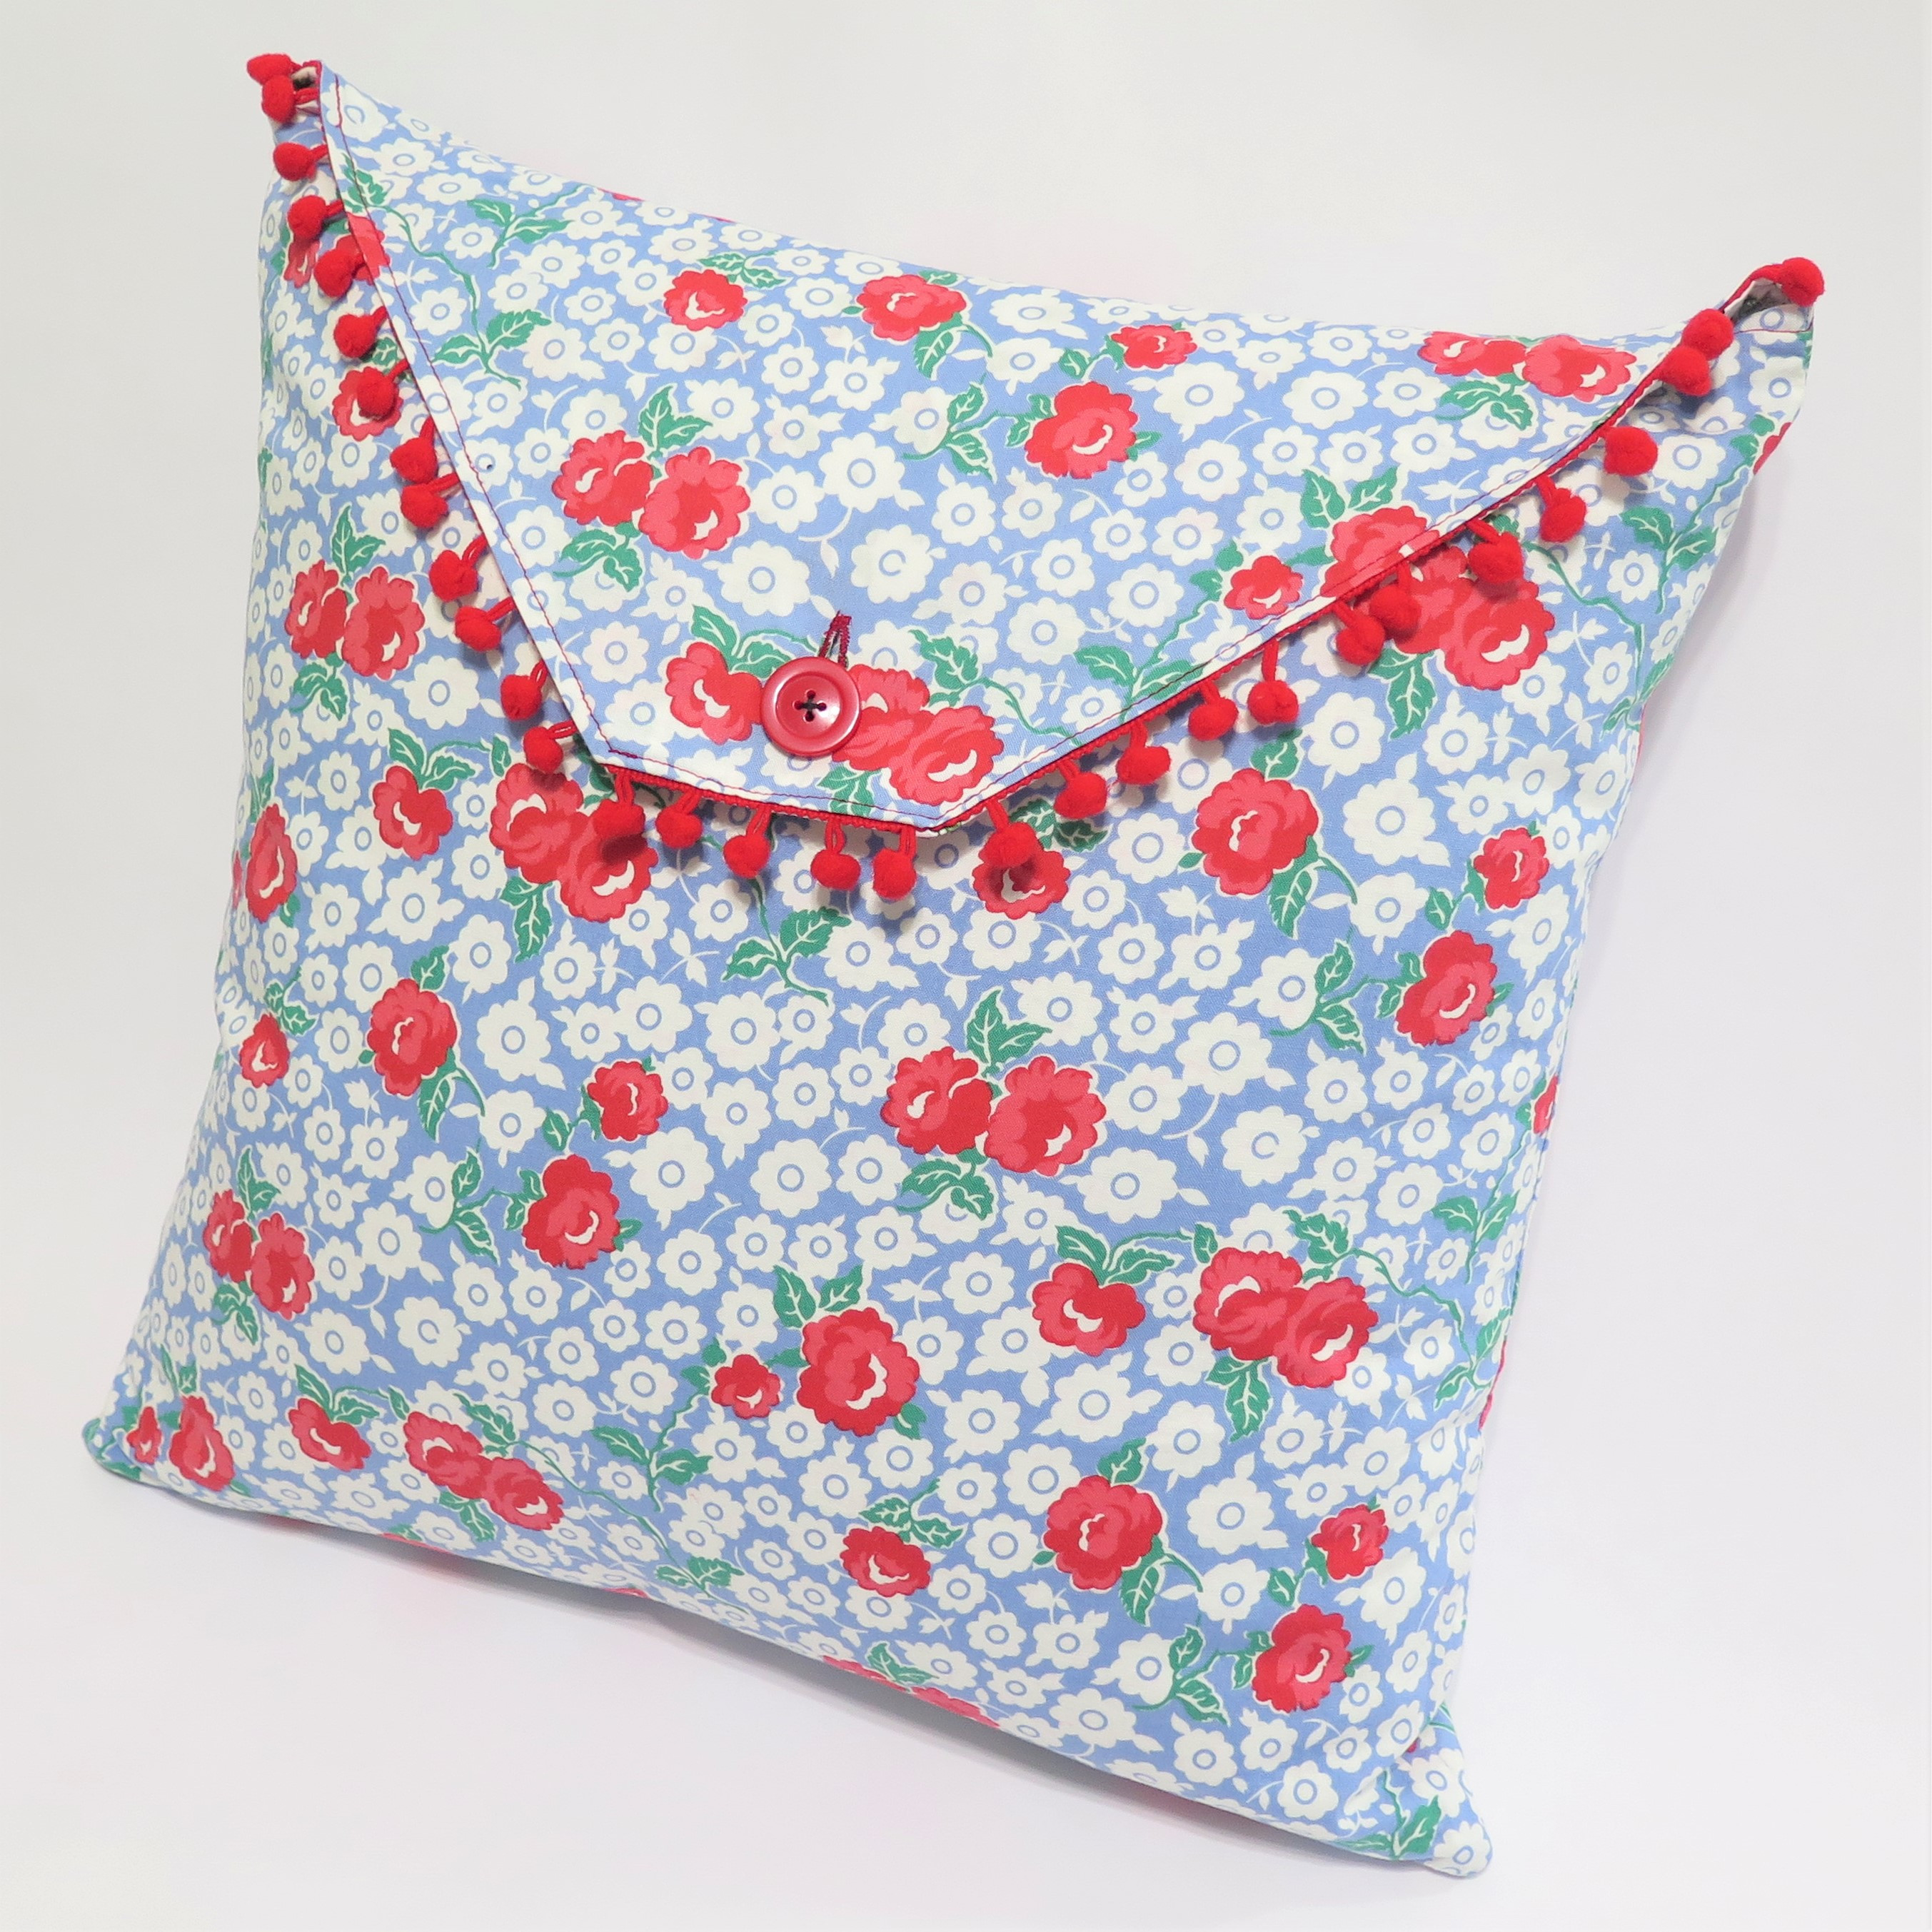 Cherry/Roses Reversible Pillow Cover